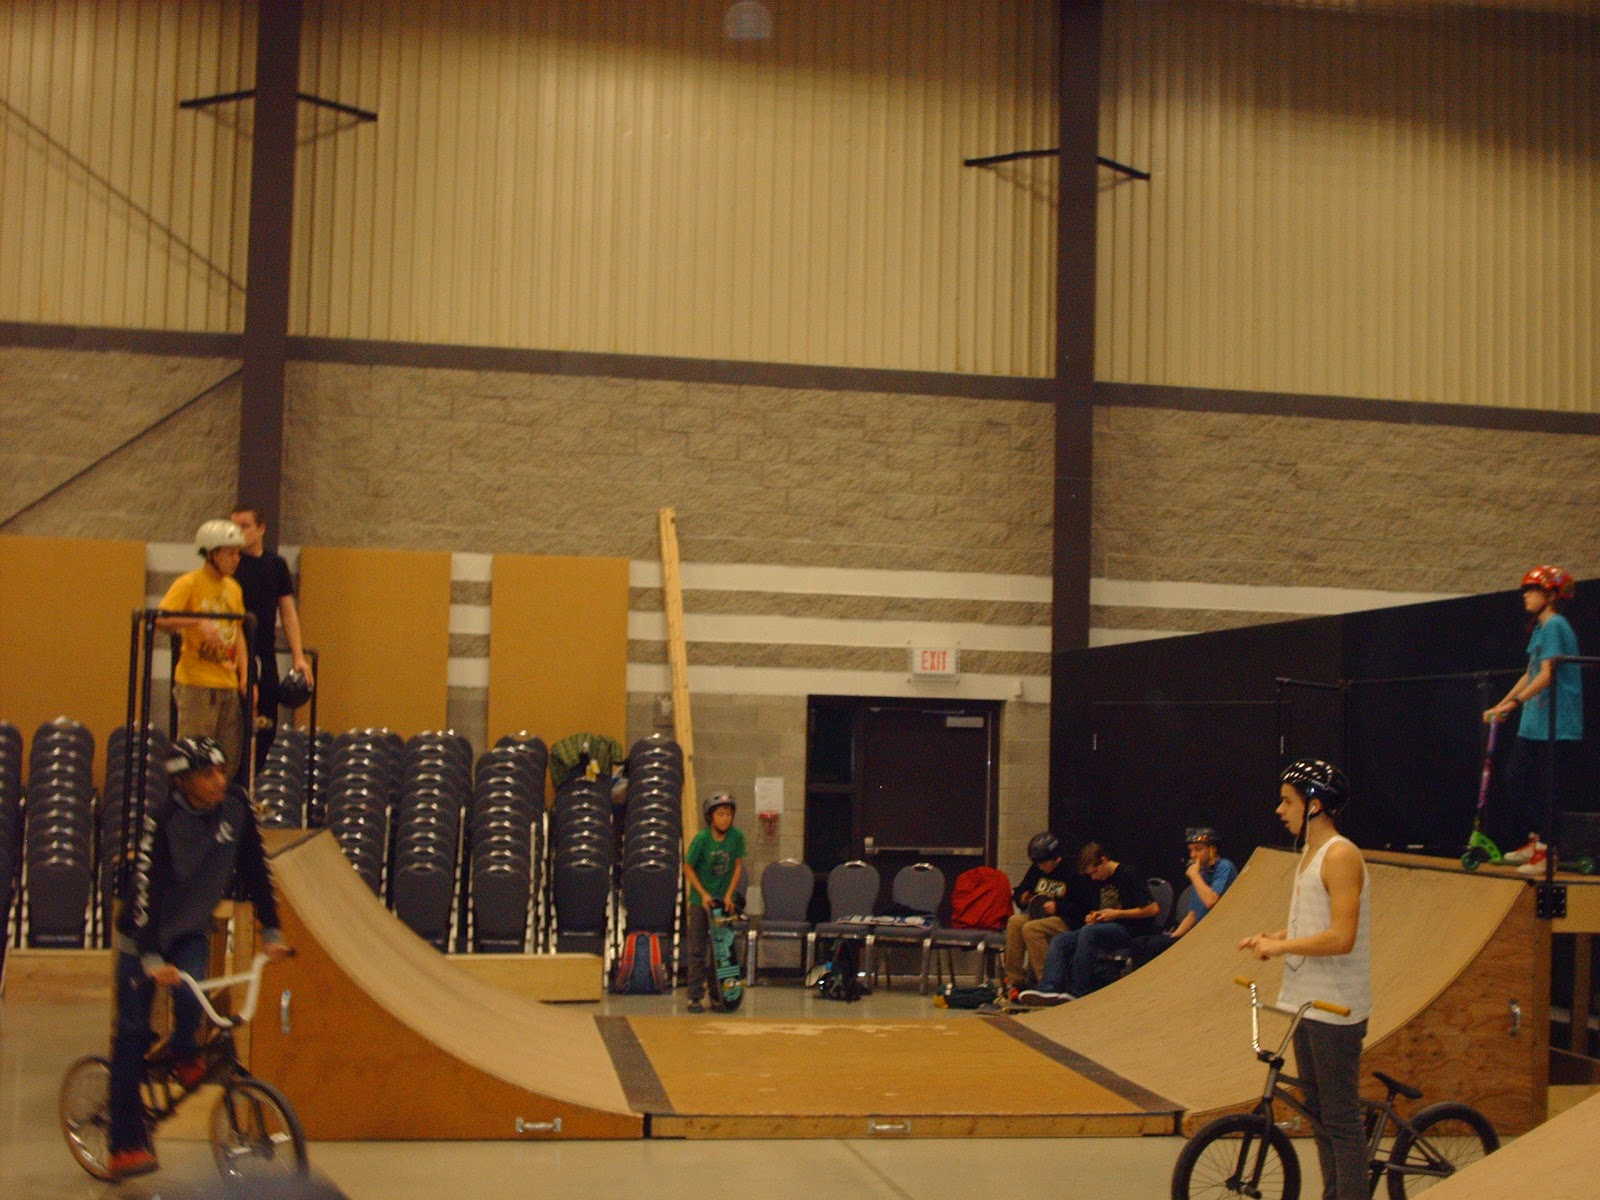 indoor skatepark, skateboarding, wooden ramps